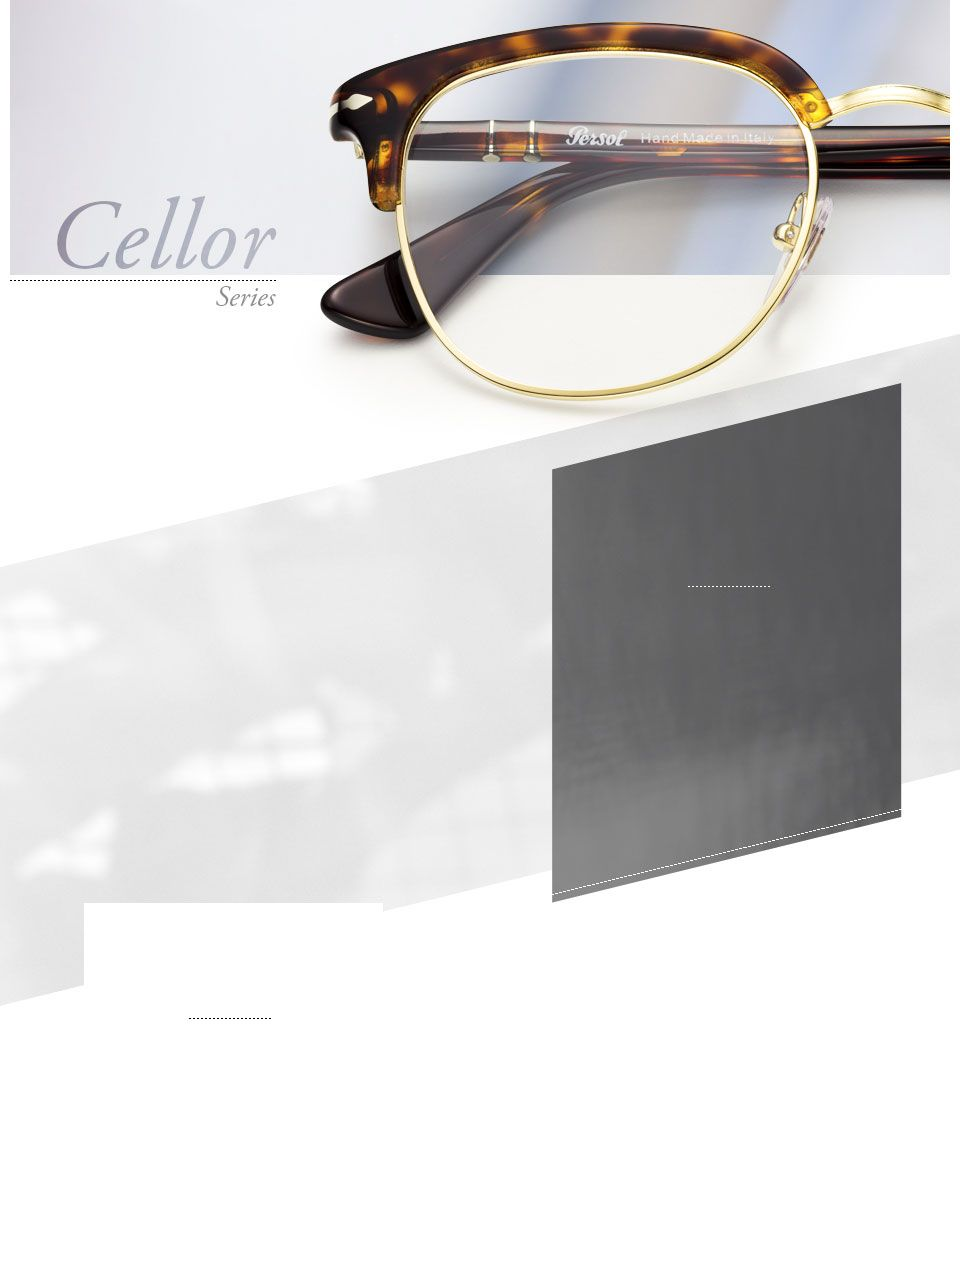 Cellor Series Background